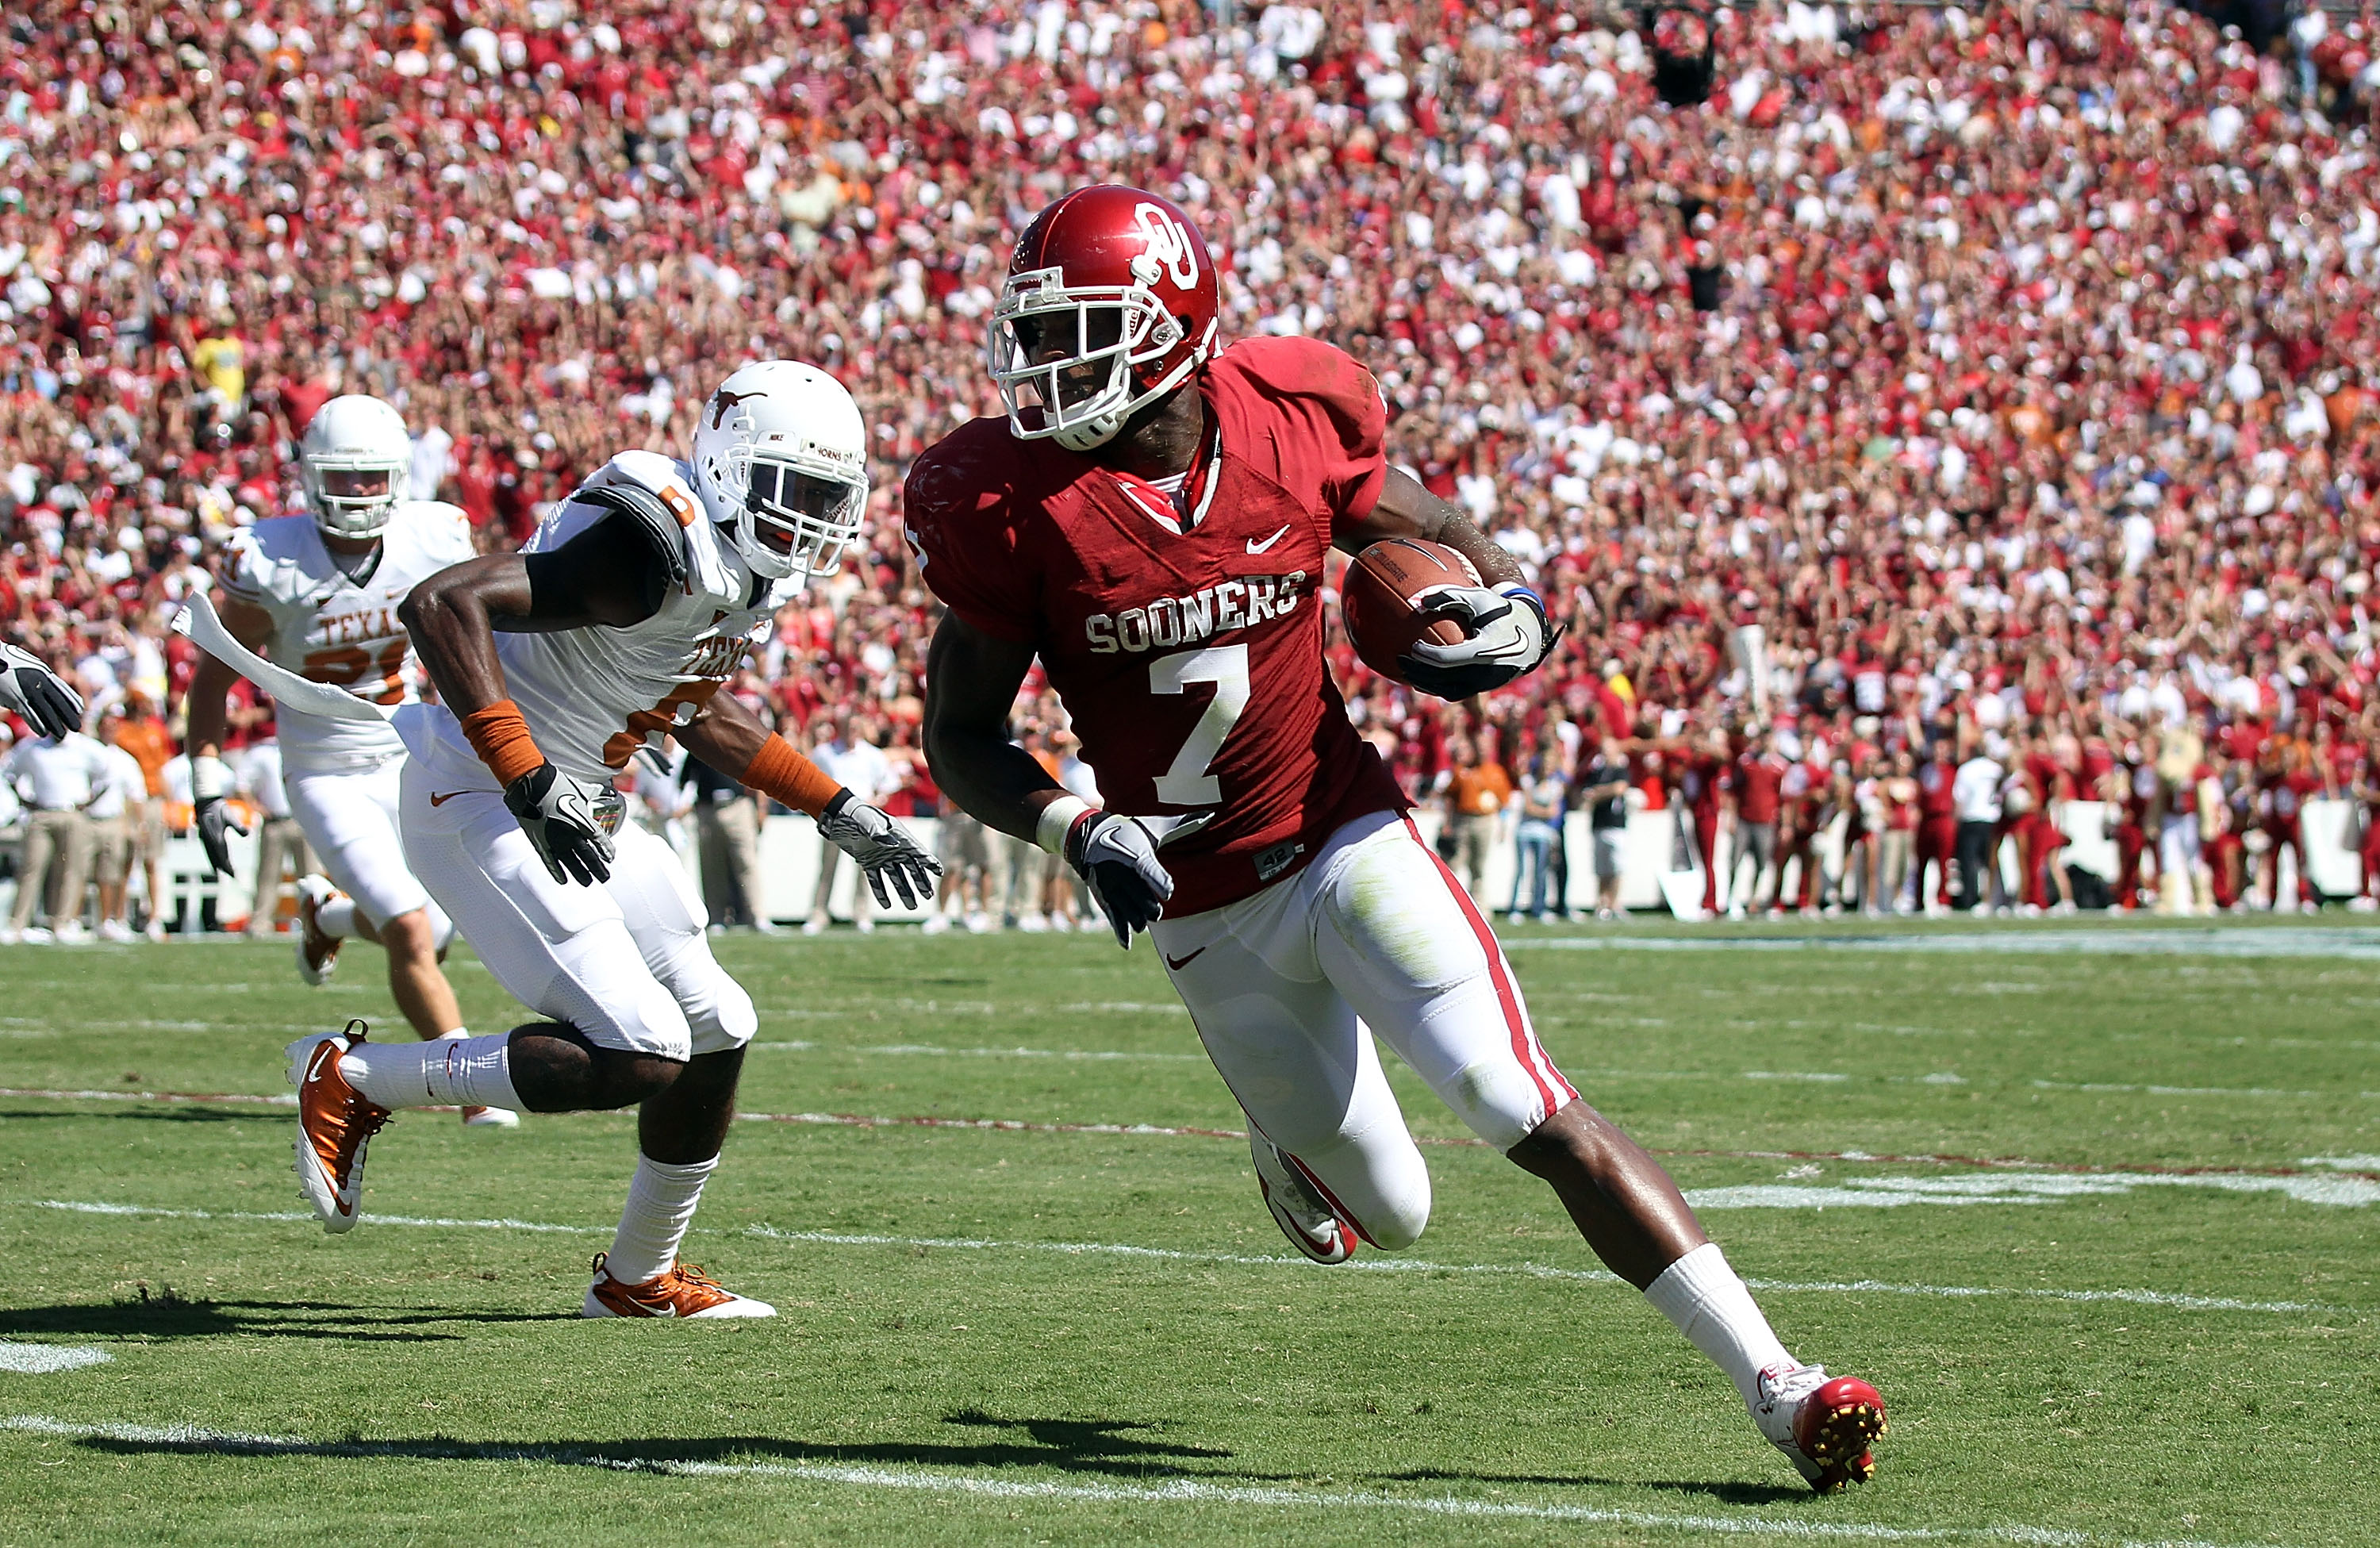 DALLAS - OCTOBER 02:  Running back Demarco Murray #7 of the Oklahoma Sooners runs for a touchdown past James Haynes #8 of the Texas Longhorns in the first quarter at the Cotton Bowl on October 2, 2010 in Dallas, Texas.  (Photo by Ronald Martinez/Getty Ima